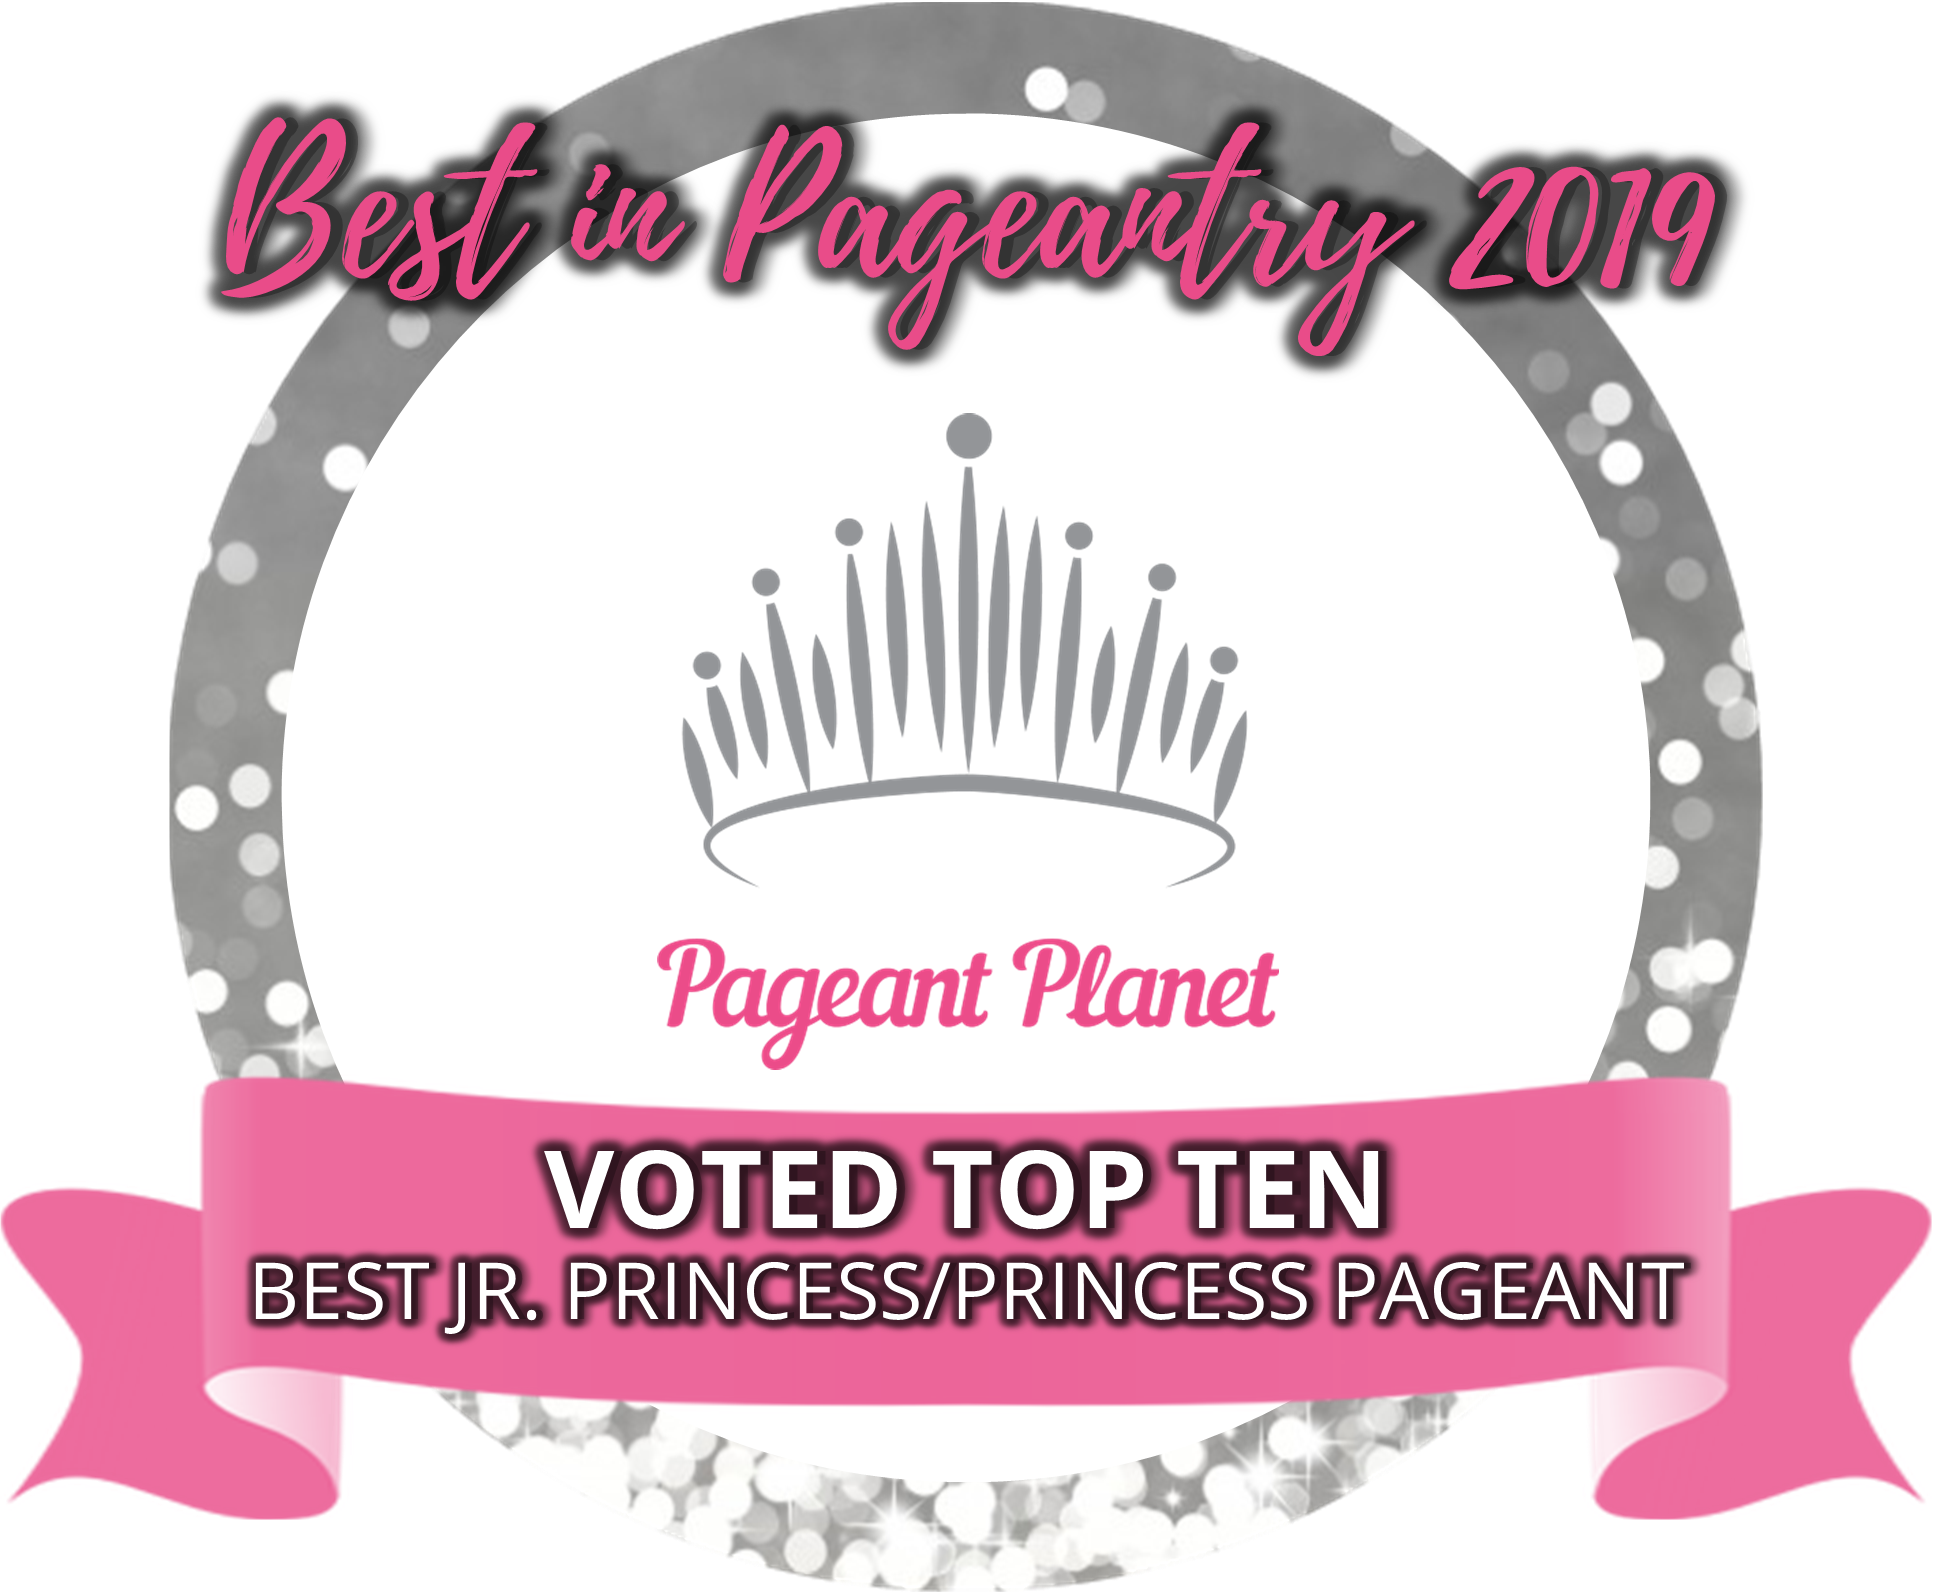 Top 10 Princess Pageants of 2019